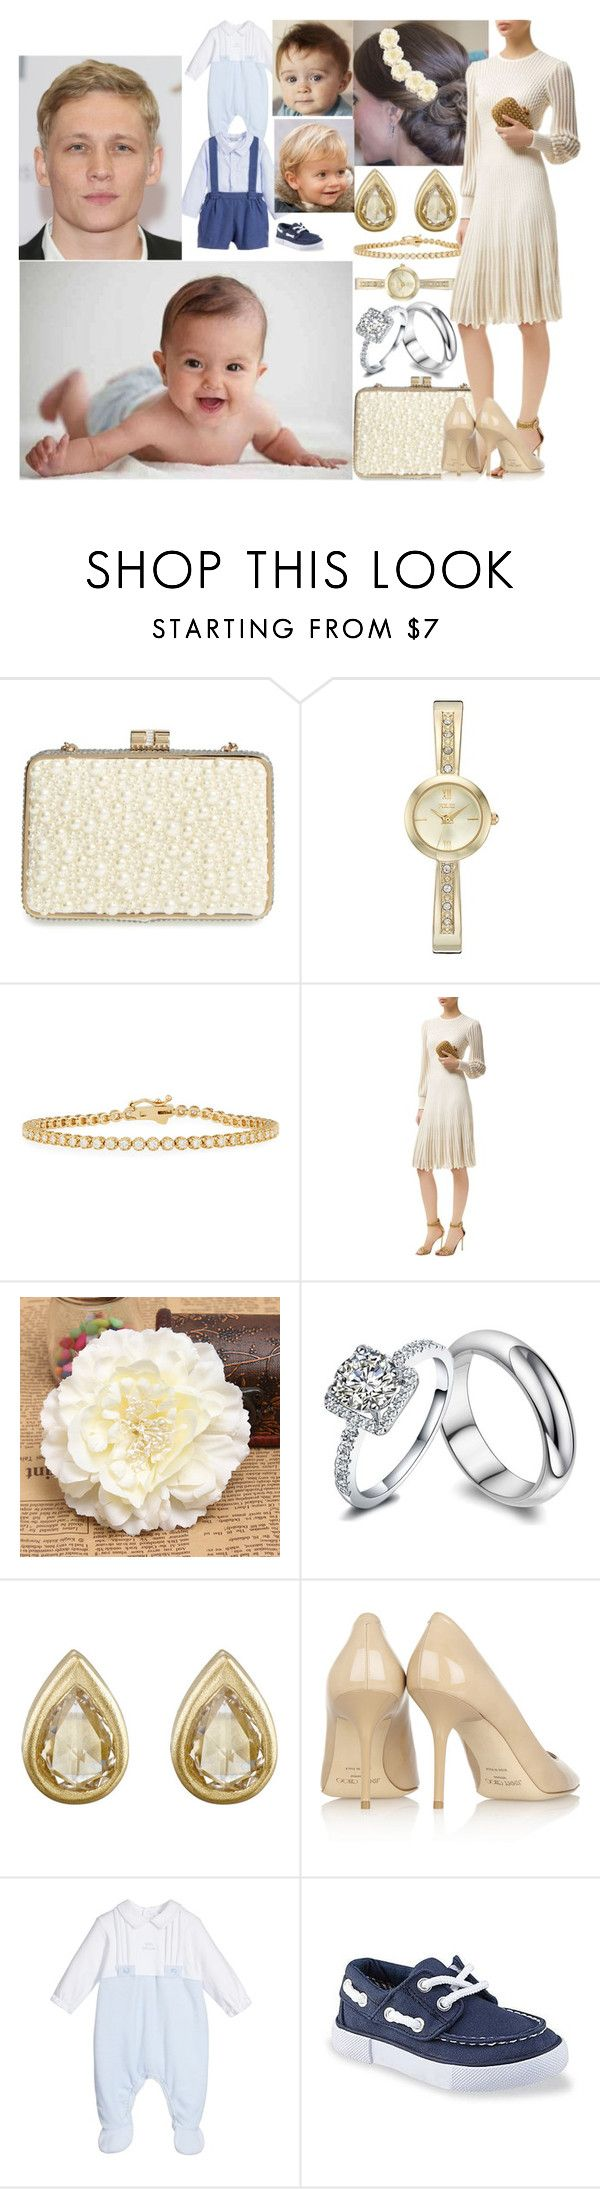 """Rebecca Miller and her family attending the christening of her nephew Konstantin"" by charlottedebora ❤ liked on Polyvore featuring Sondra Roberts, Folio, Alexander McQueen, Tate and Jimmy Choo"